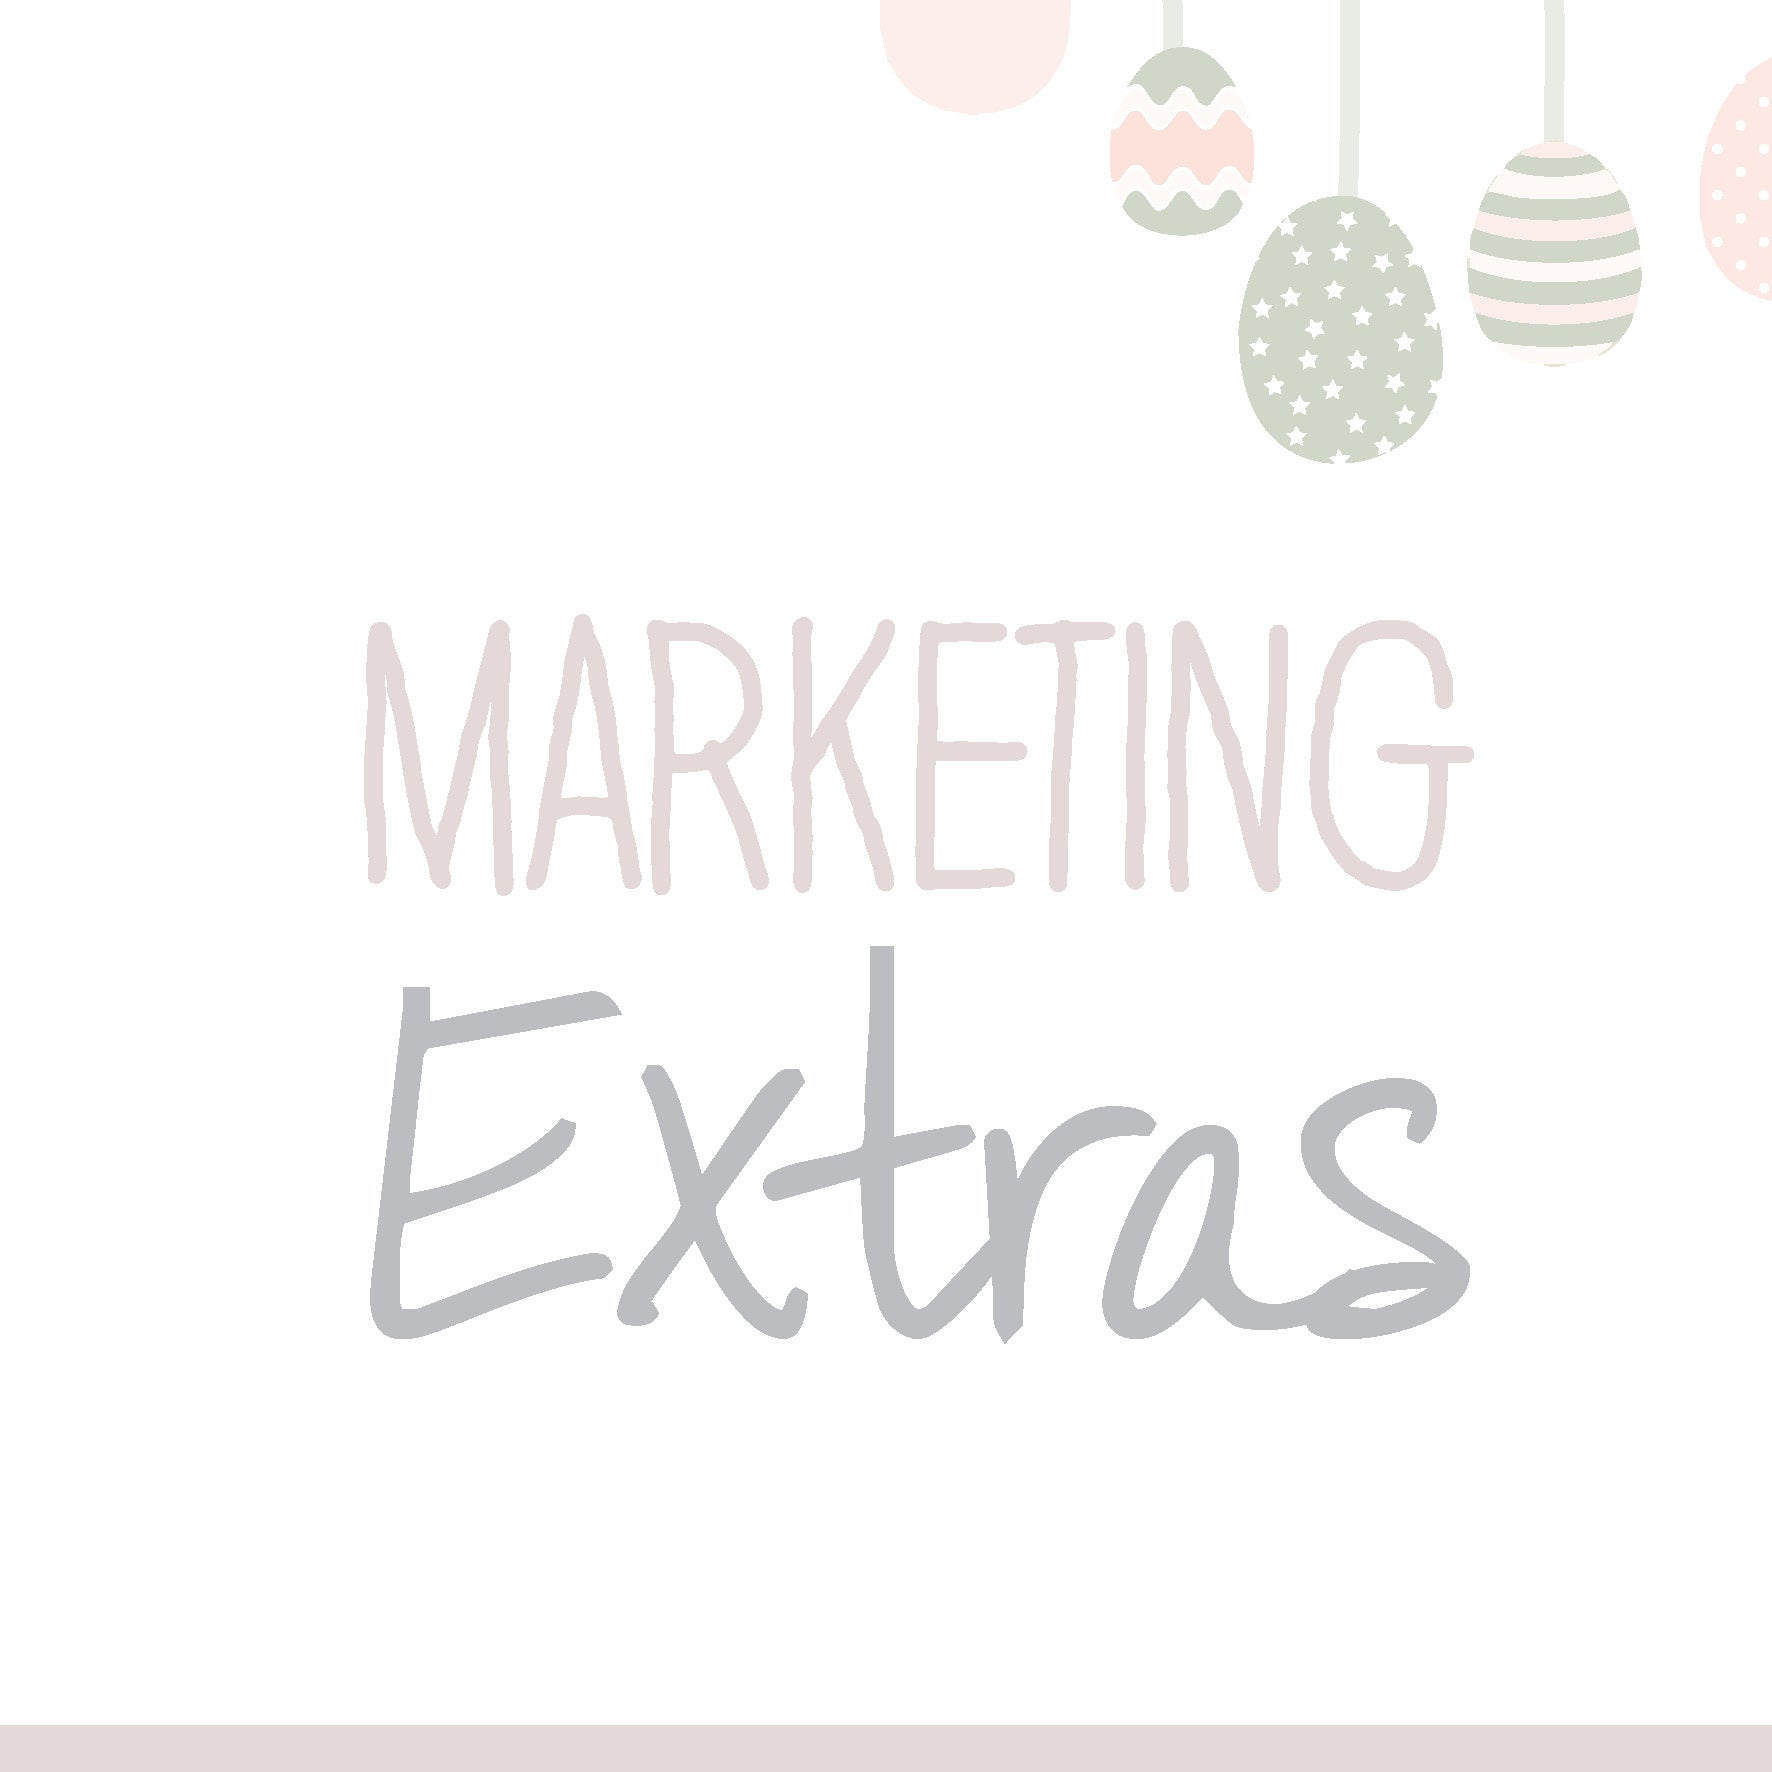 Easter Marketing Extras (15th March 2020)